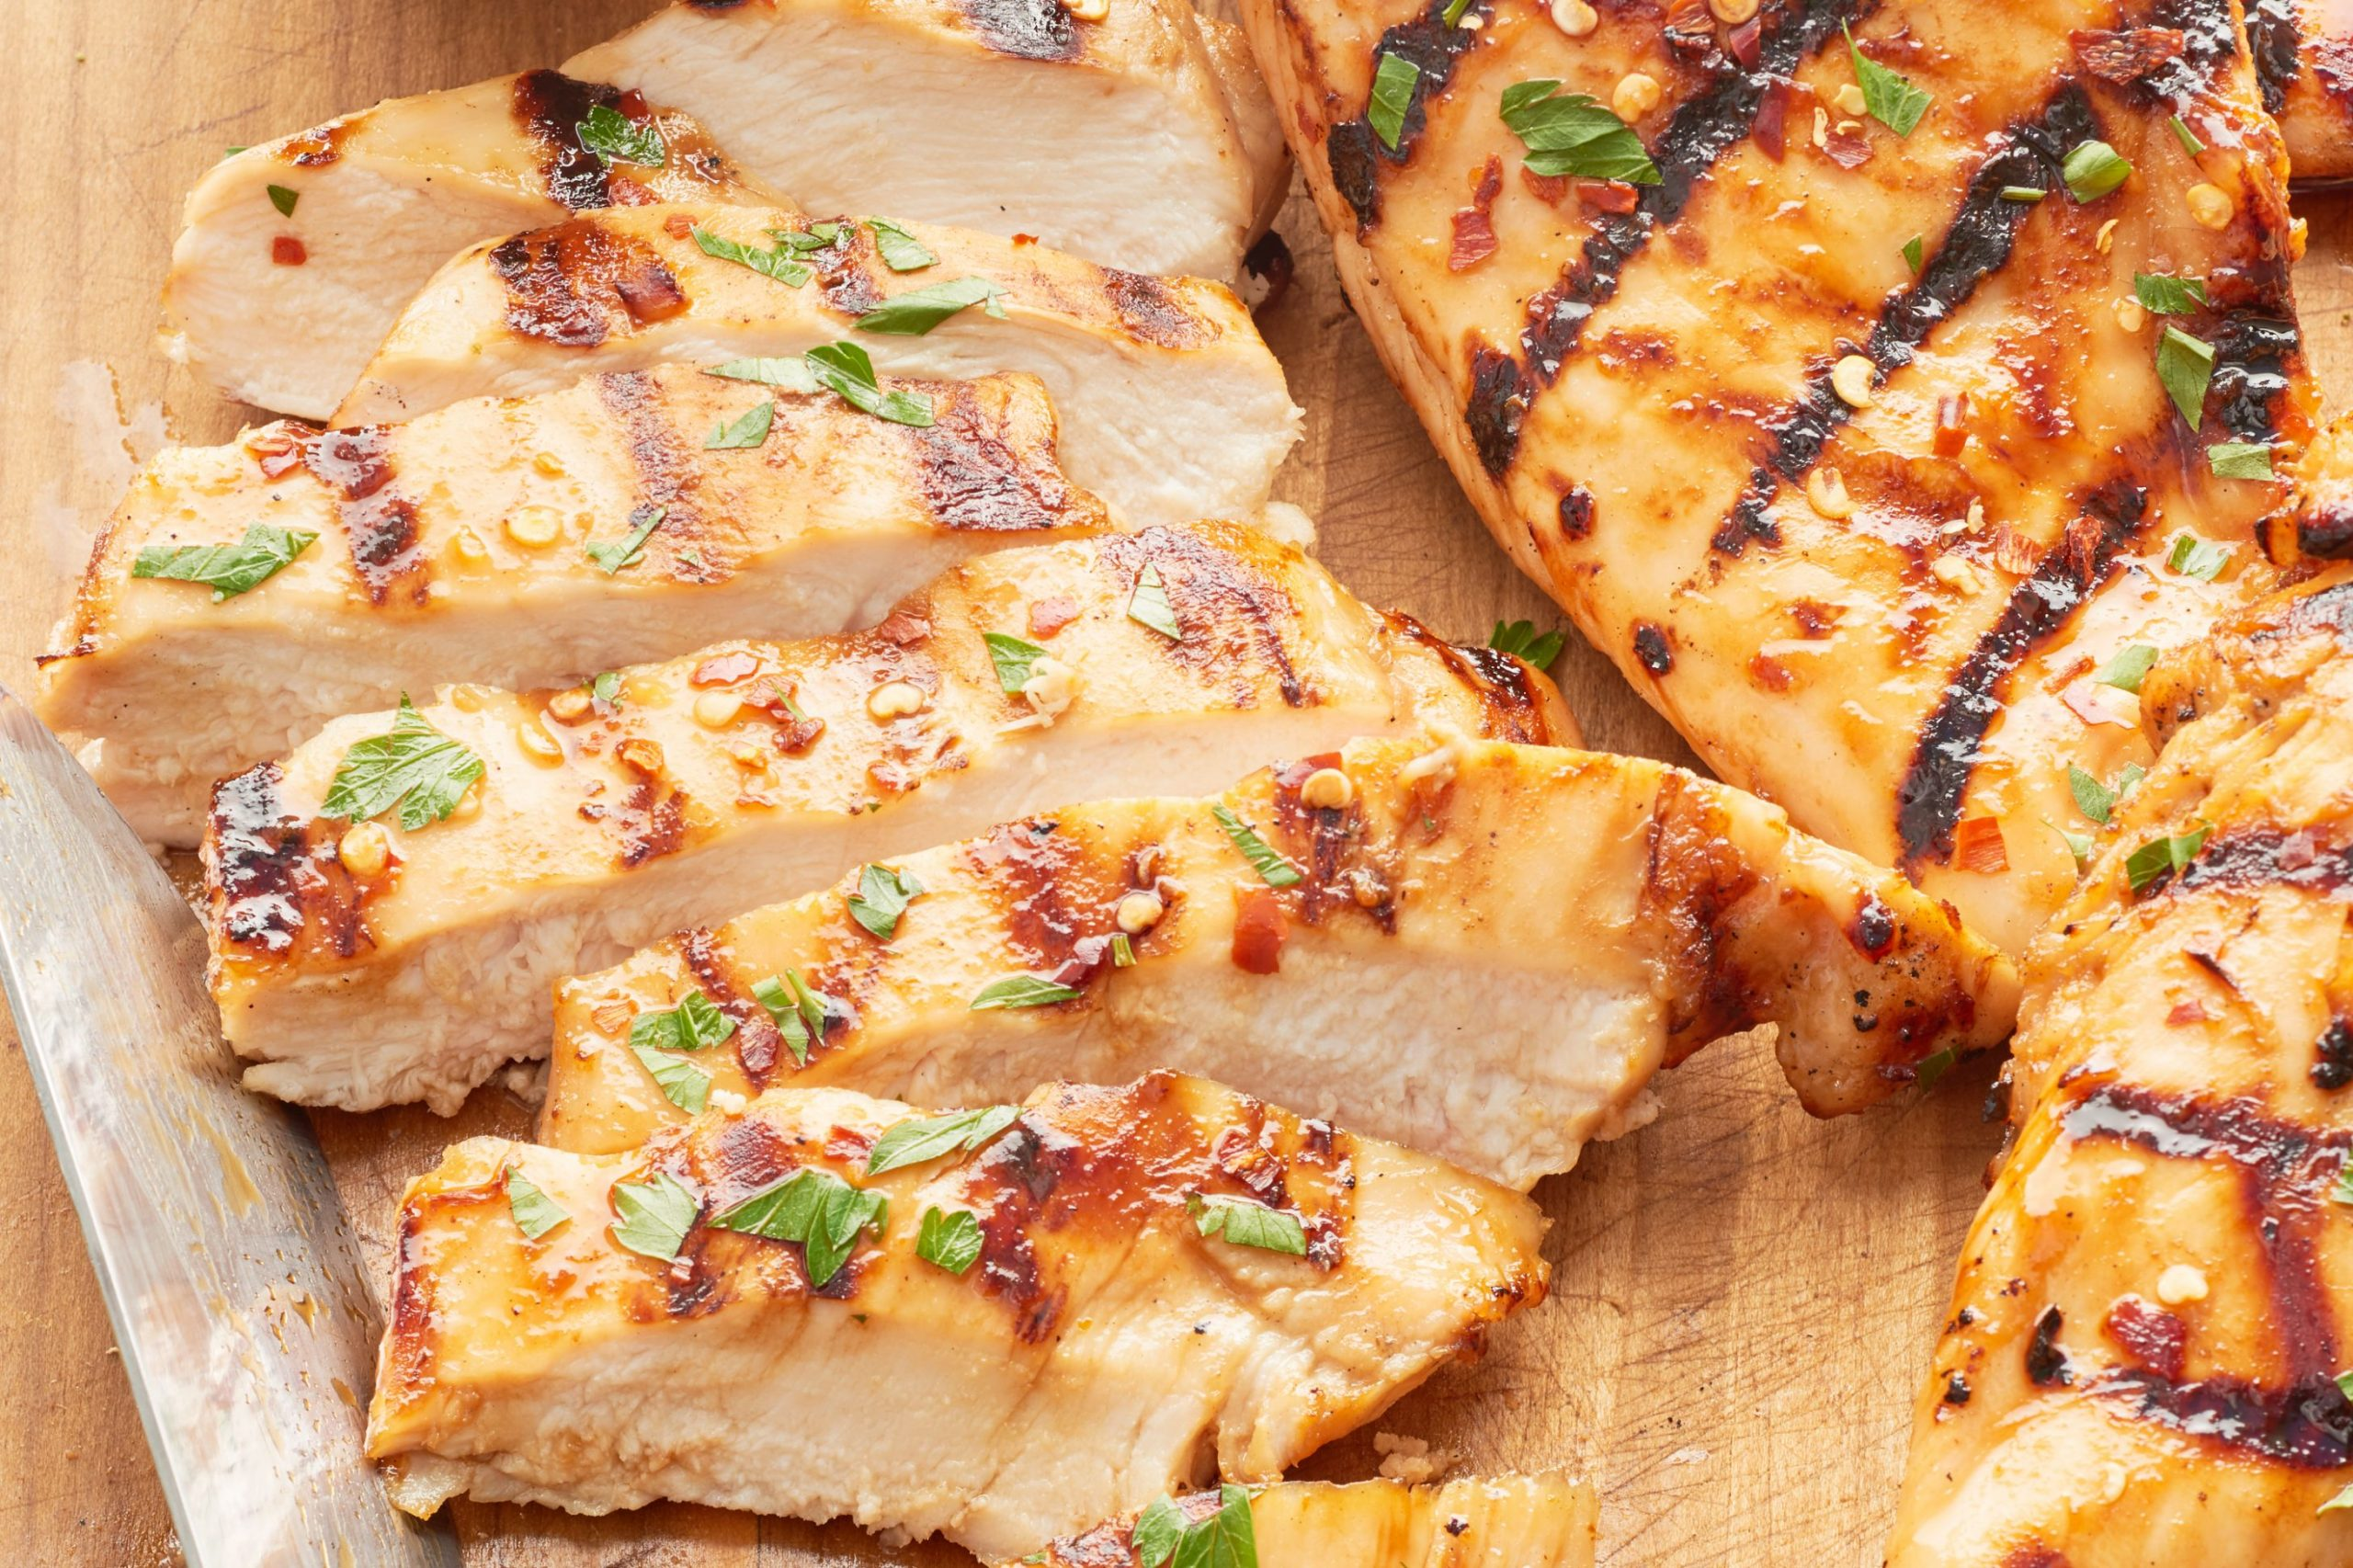 How To Make Juicy, Flavorful Grilled Chicken Breast - Recipes Chicken Breast Bbq